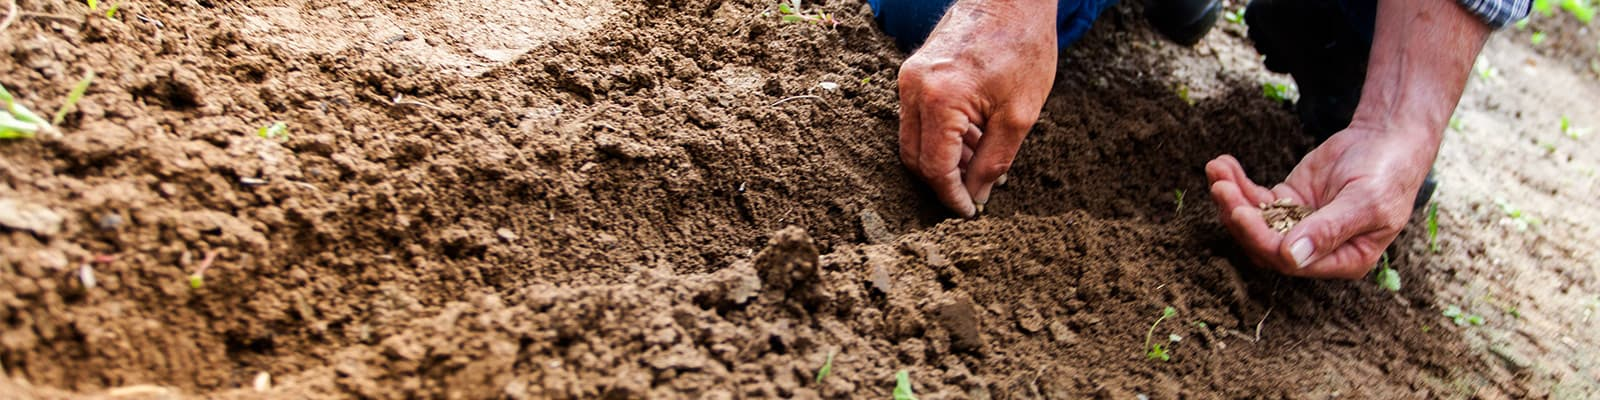 Seeds are planted into soil by hand